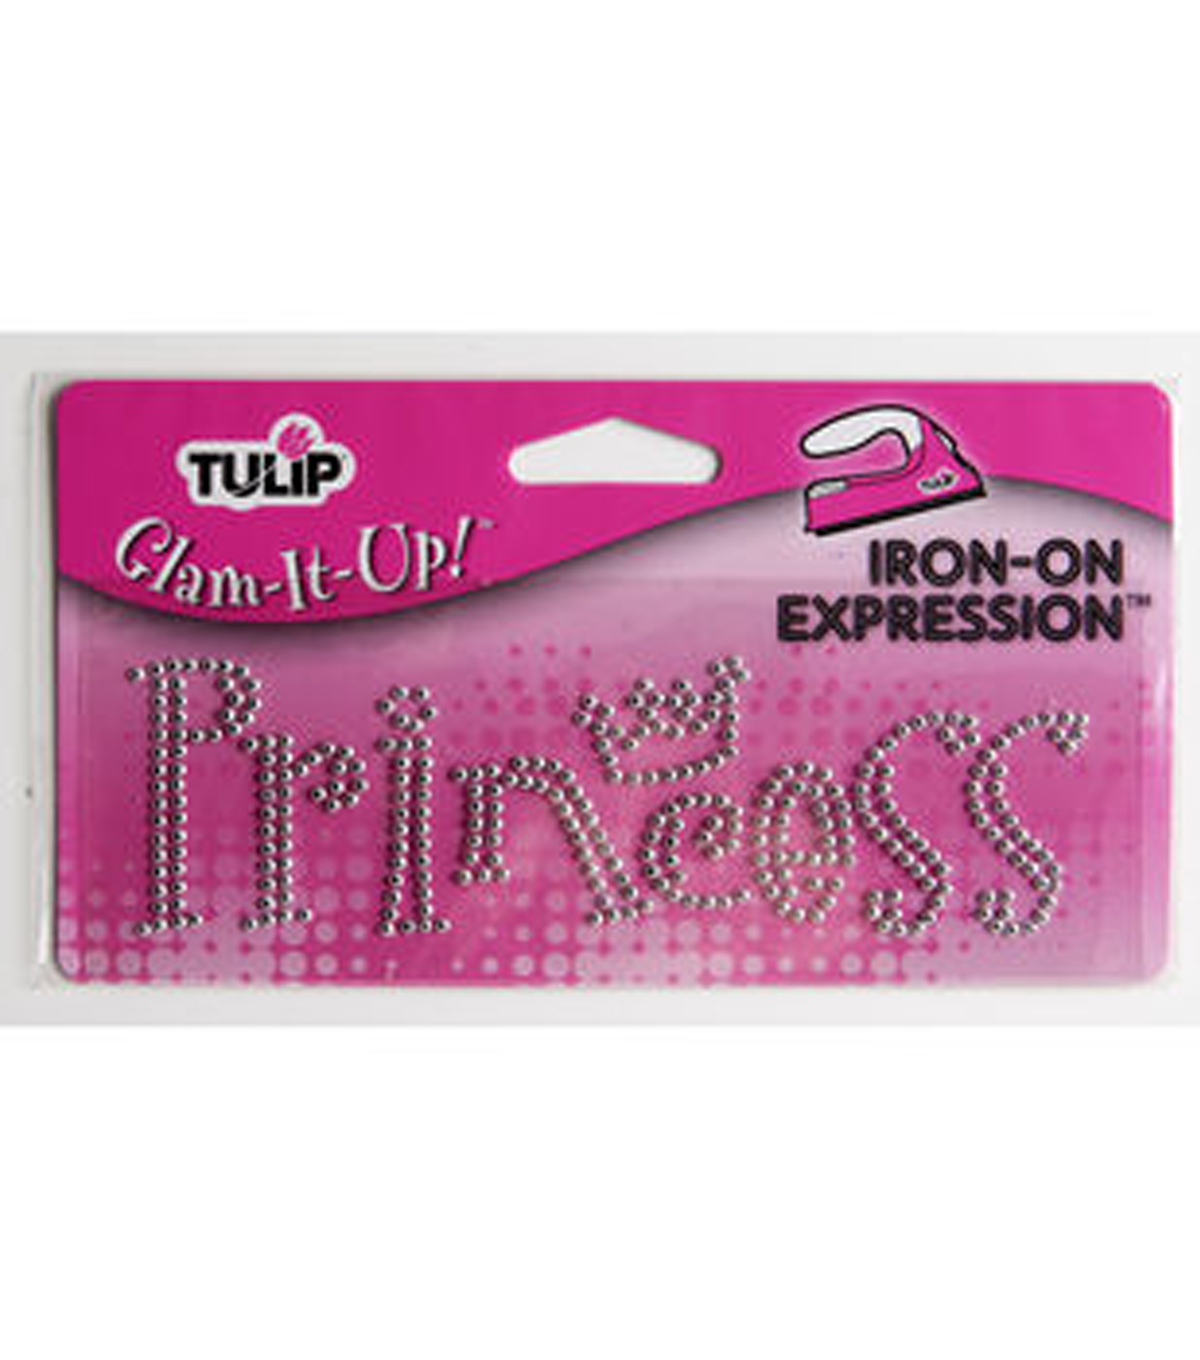 Tulip® Glam-It-Up!™ Iron-On Expressions- Princess